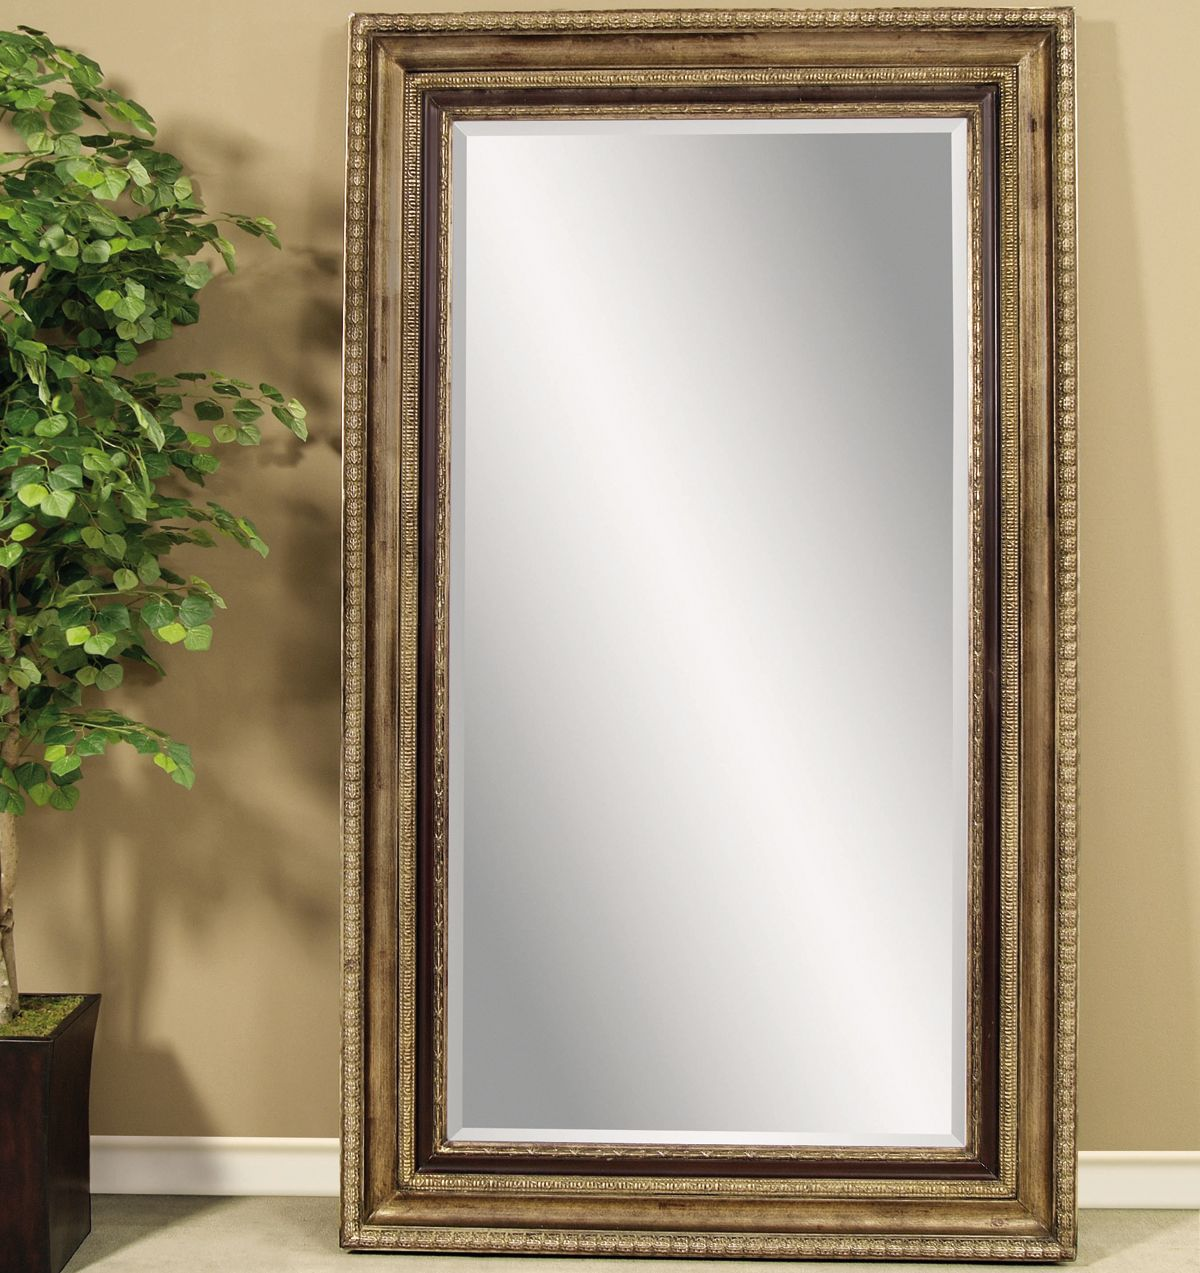 Sergio Leaning Floor Mirror - 50W x 86H in.